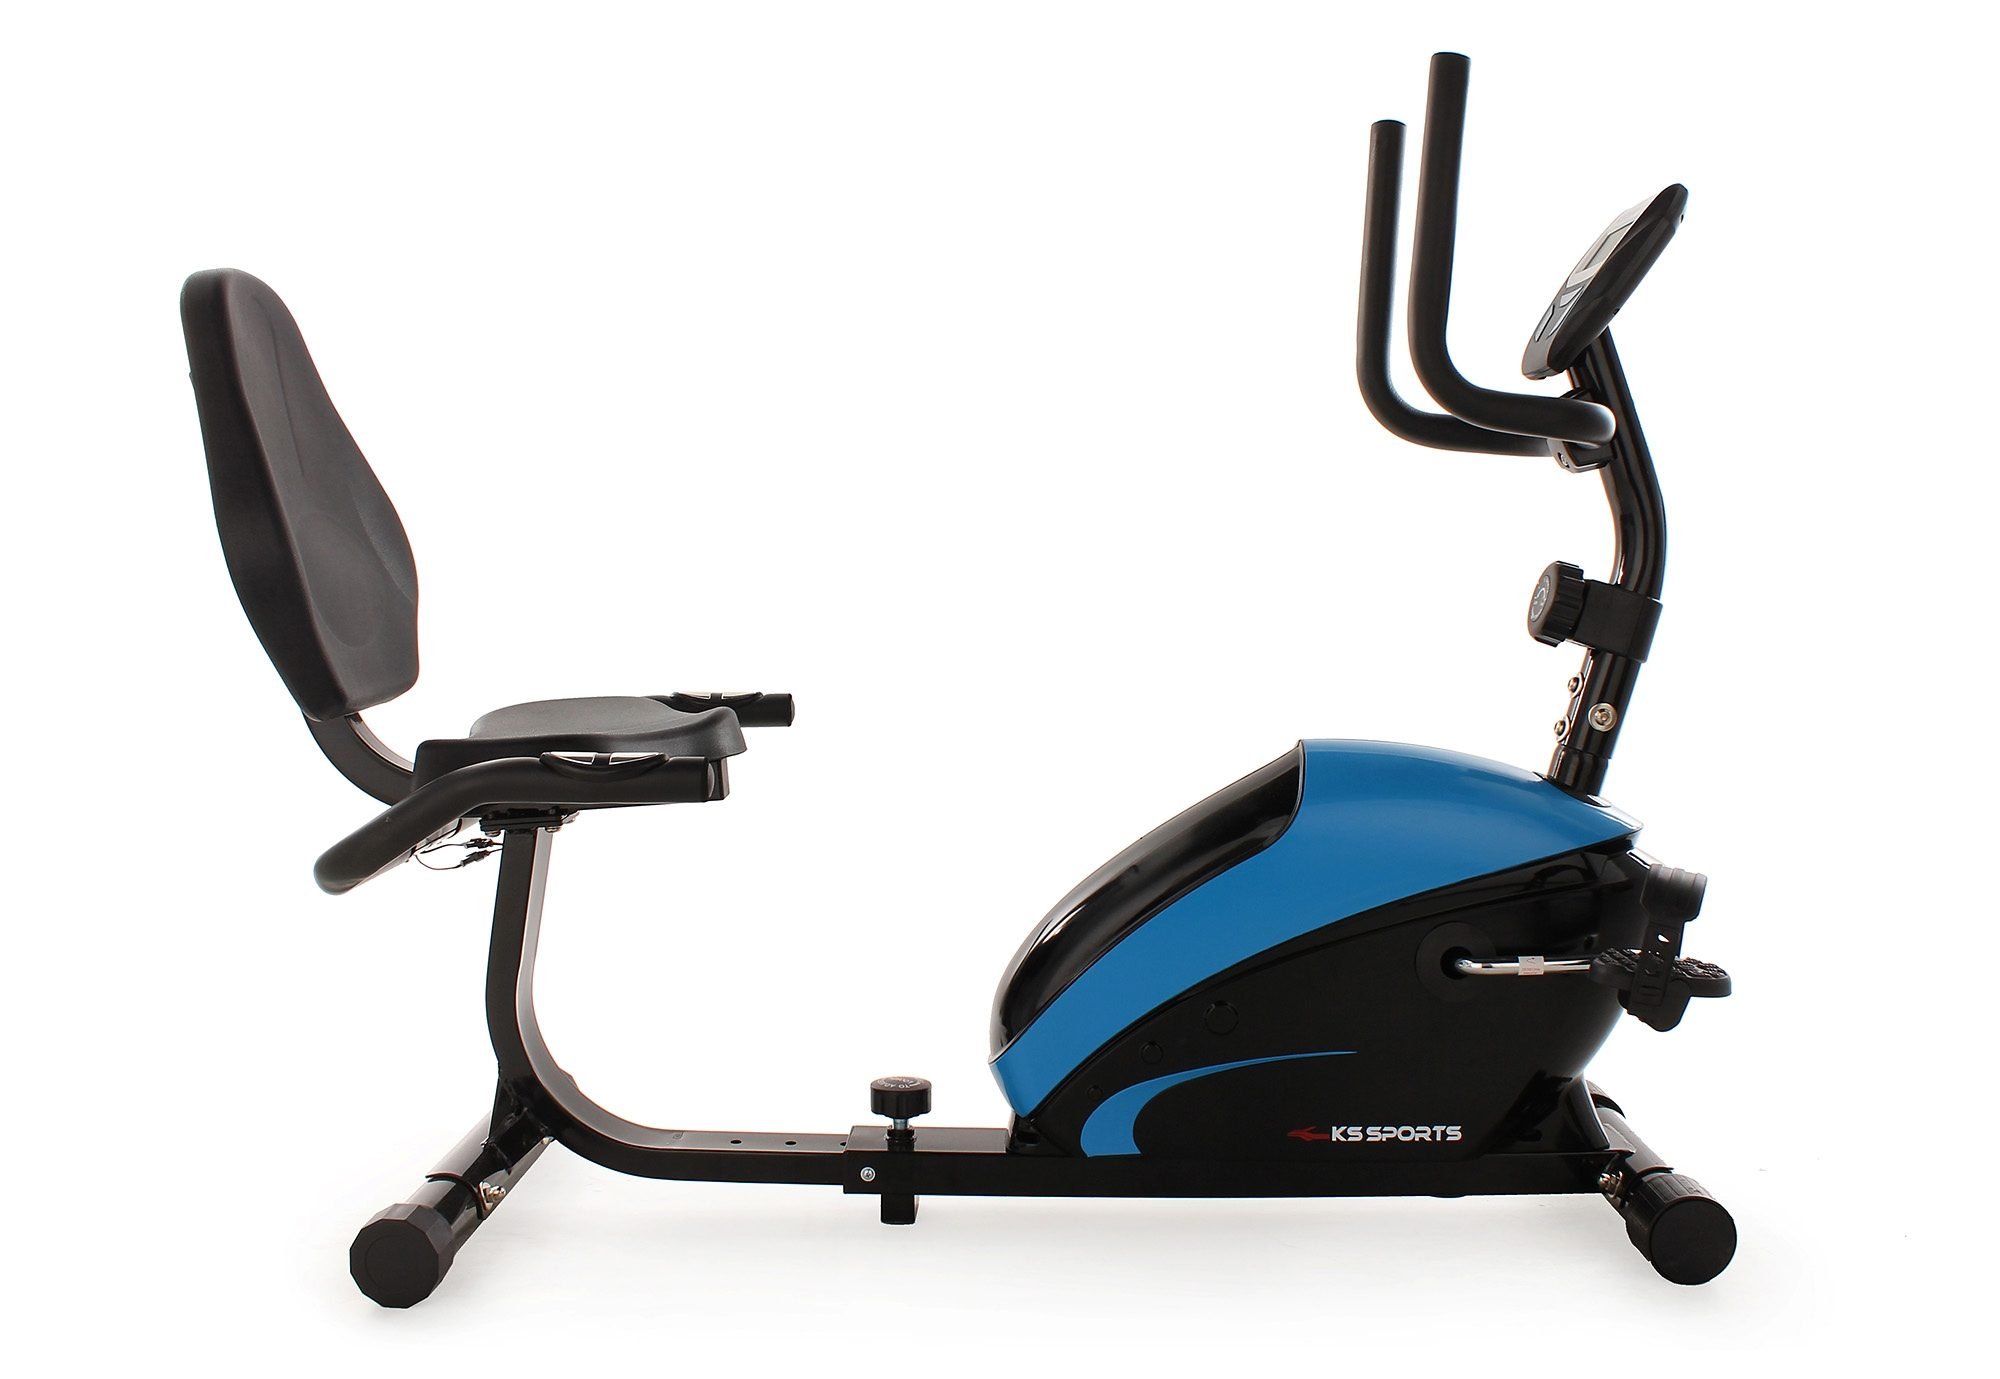 KS SPORTS Recumbent Bike, schwarz-blau, »303F«